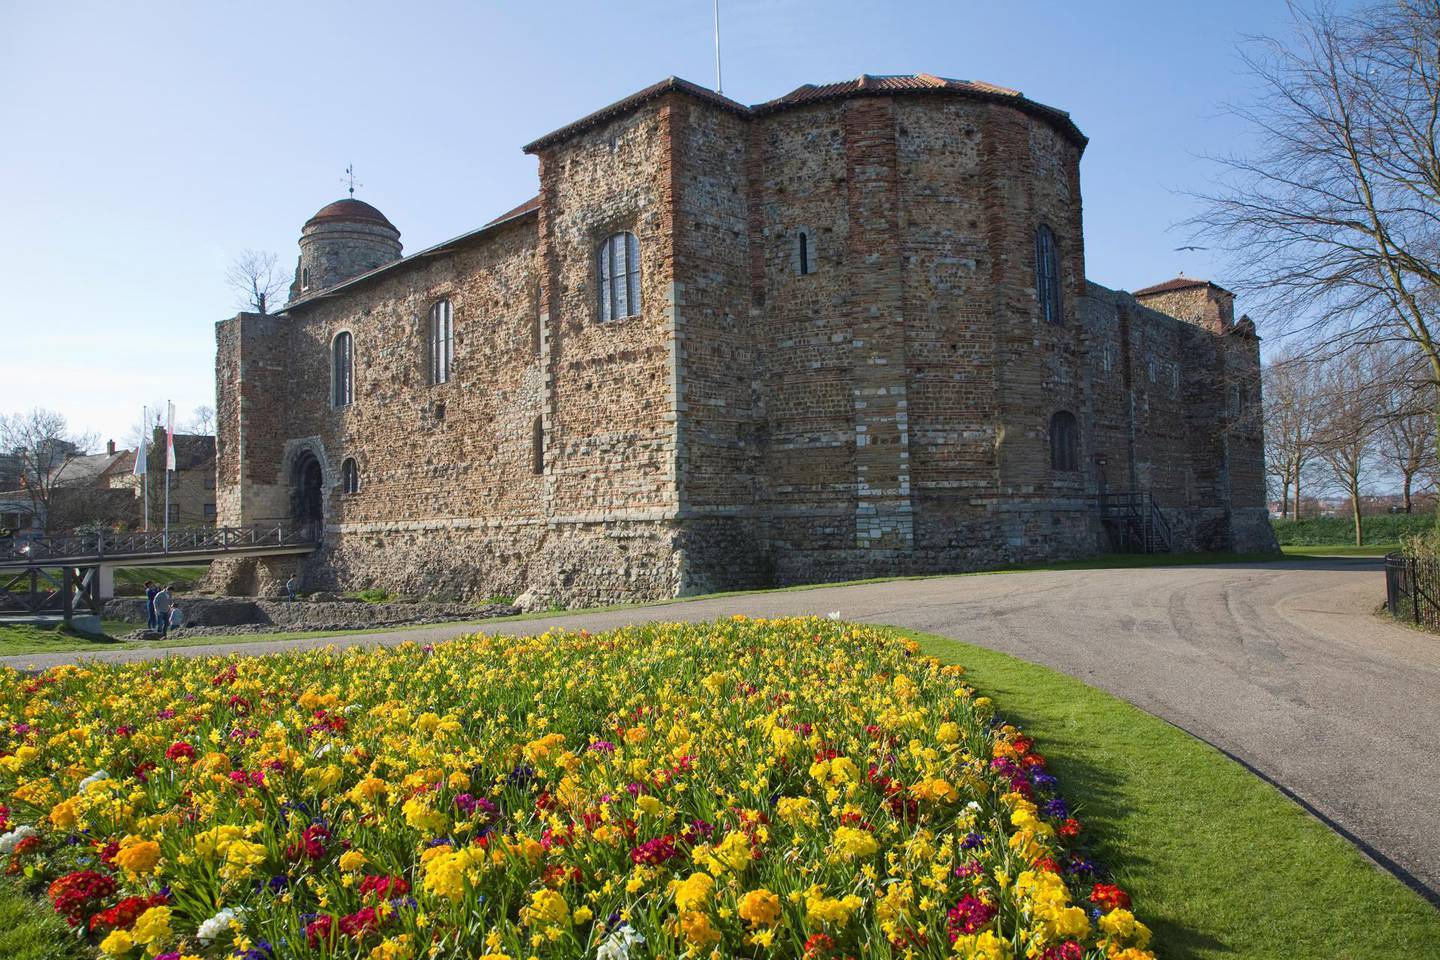 Colchester castle, Colchester, Essex, England. (Photo By: Geography Photos/UIG via Getty Images)